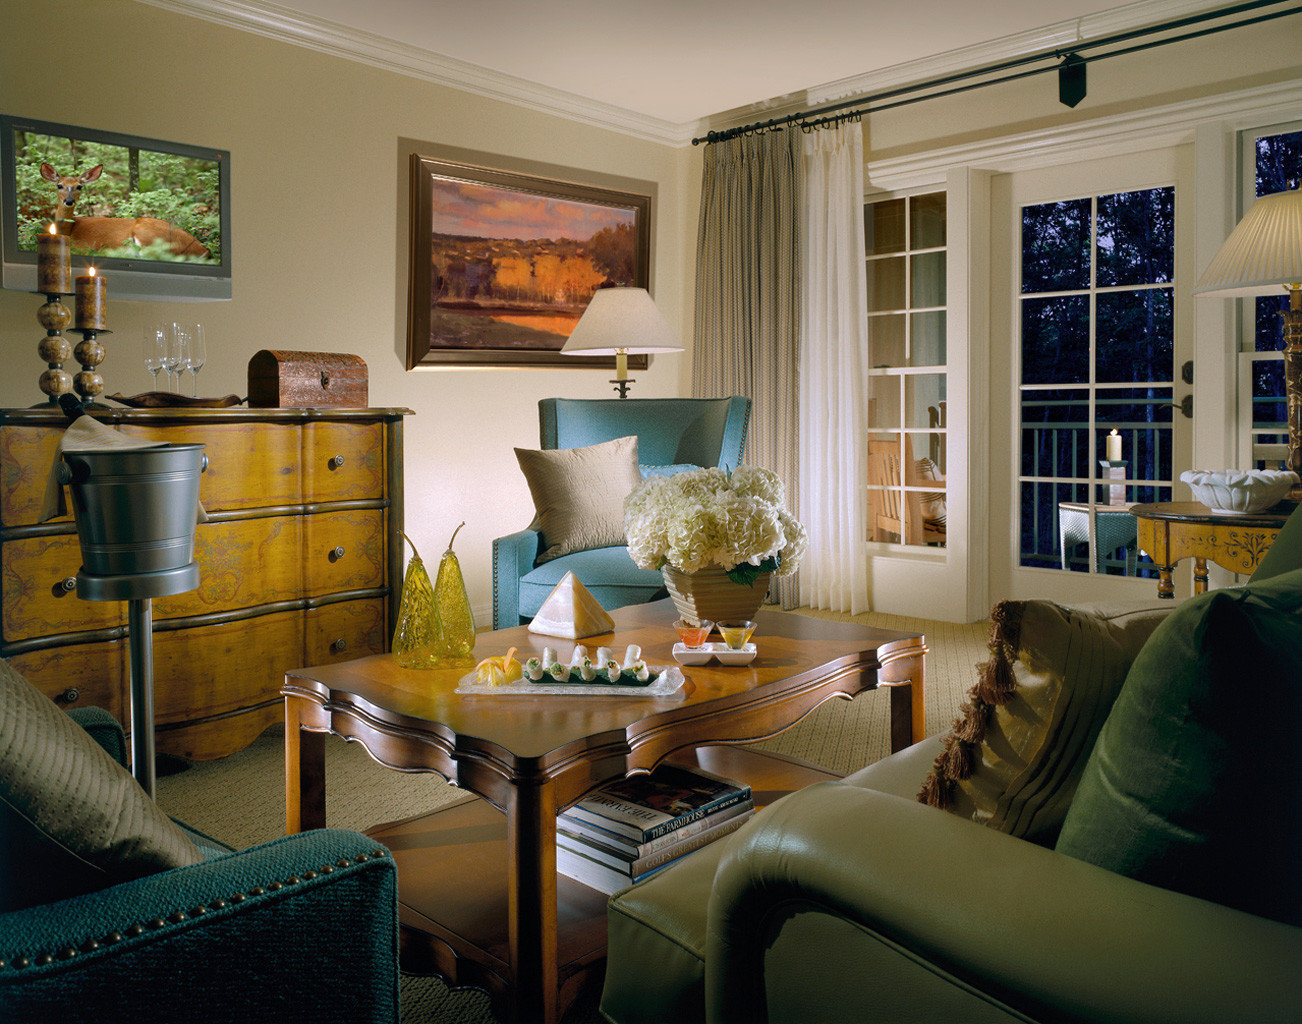 All-Inclusive Resorts Country Hotels Living Lodge Romance Rustic indoor sofa window room floor living room dining room property chair home estate interior design green real estate furniture condominium cottage